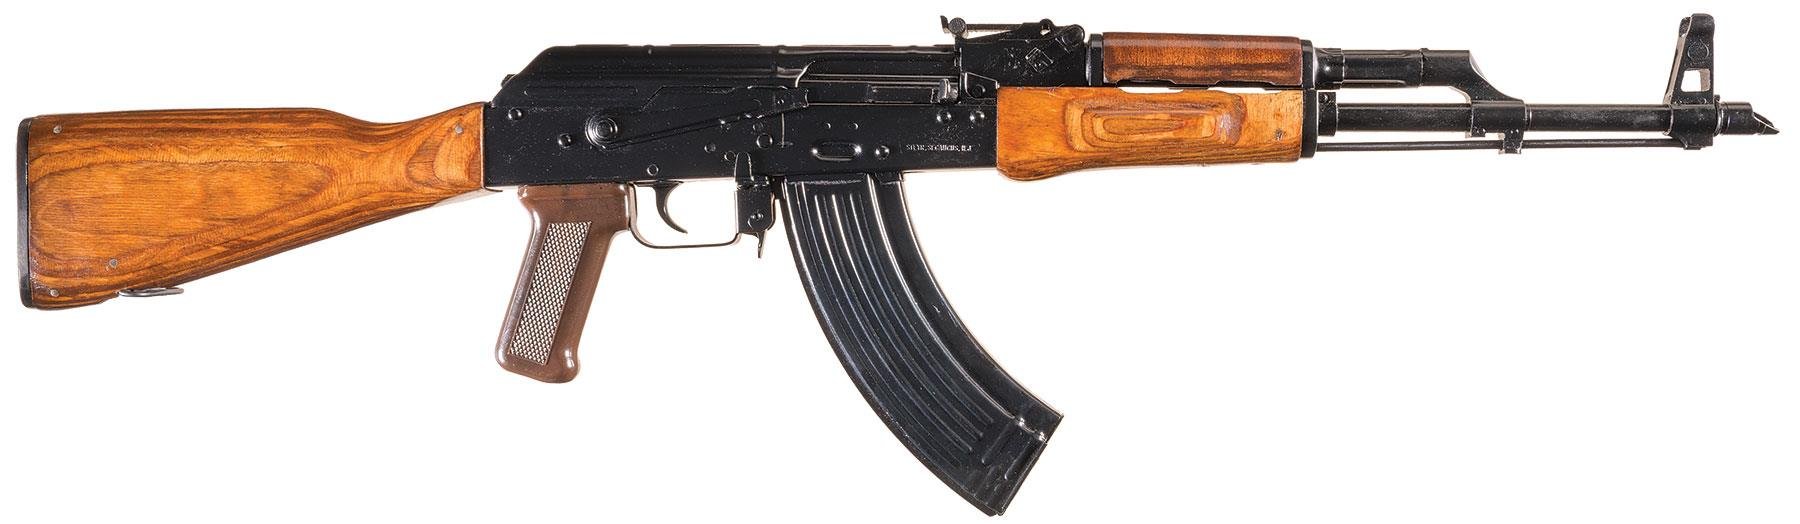 Polytech ak-47 serial numbers